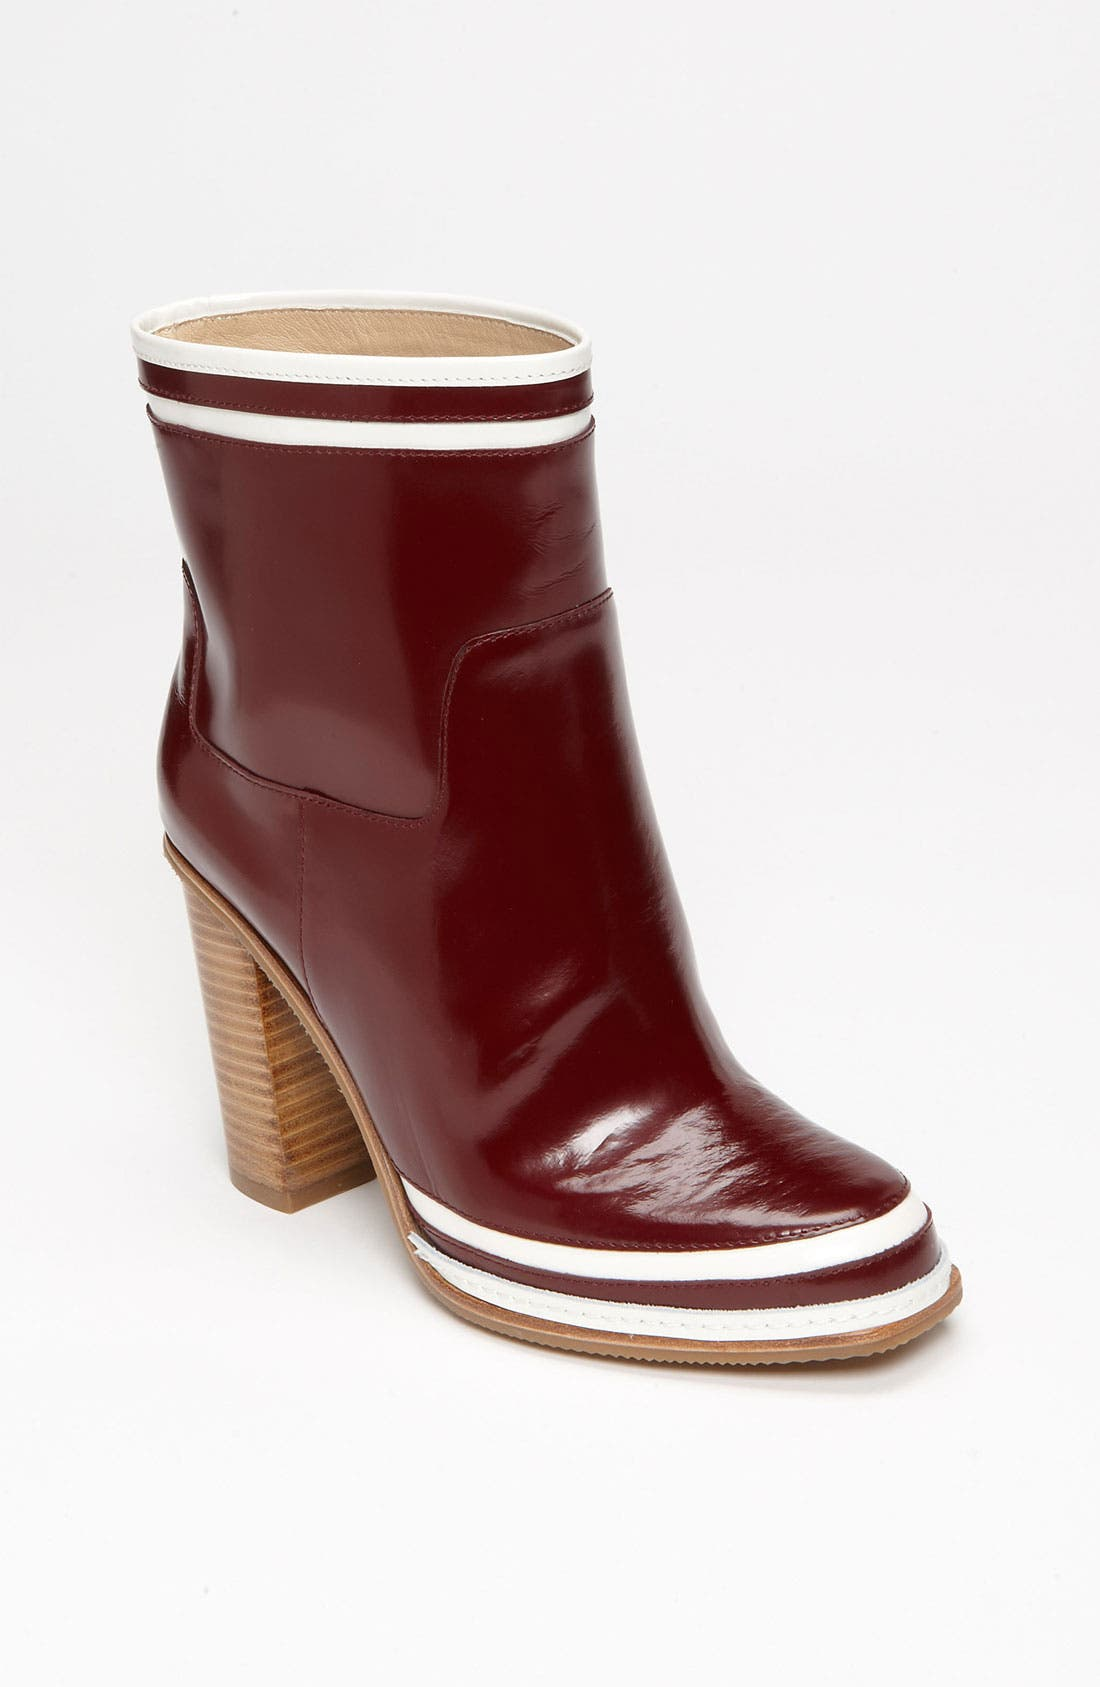 Alternate Image 1 Selected - Diane von Furstenberg 'Spa' Boot